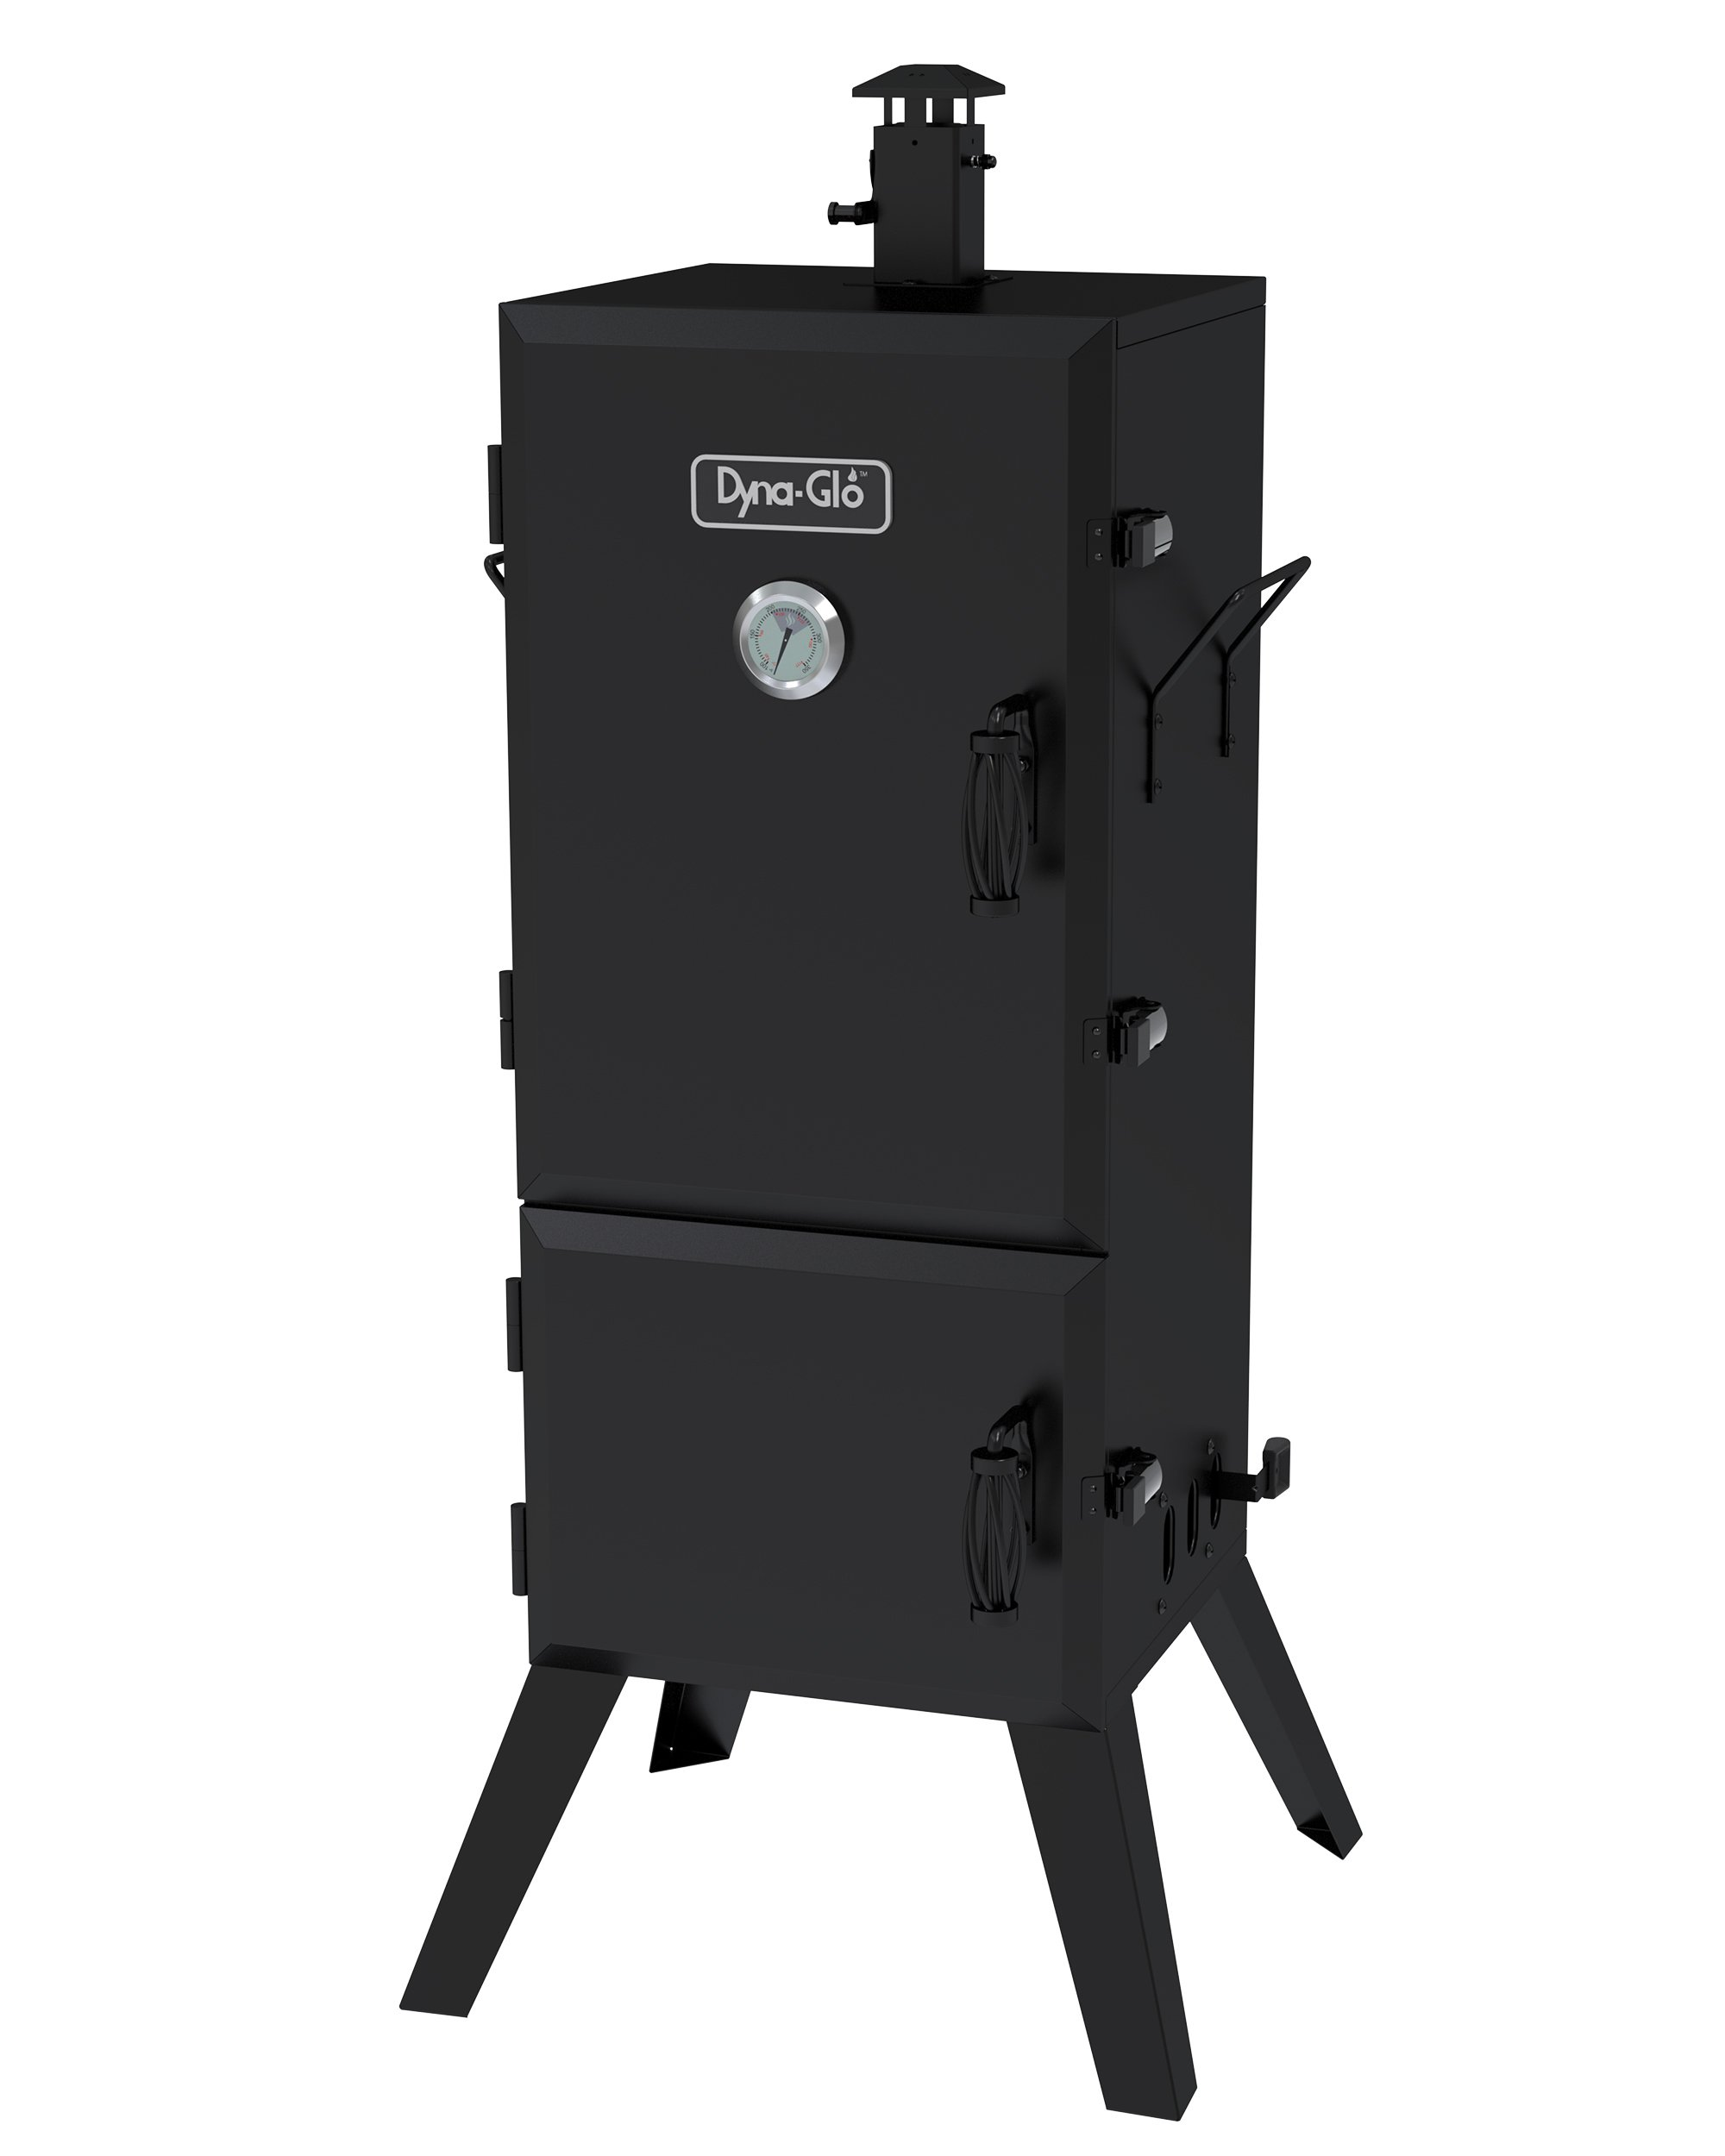 Dyna-Glo DGX780BDC-D 36'' Vertical Charcoal Smoker by Dyna-Glo